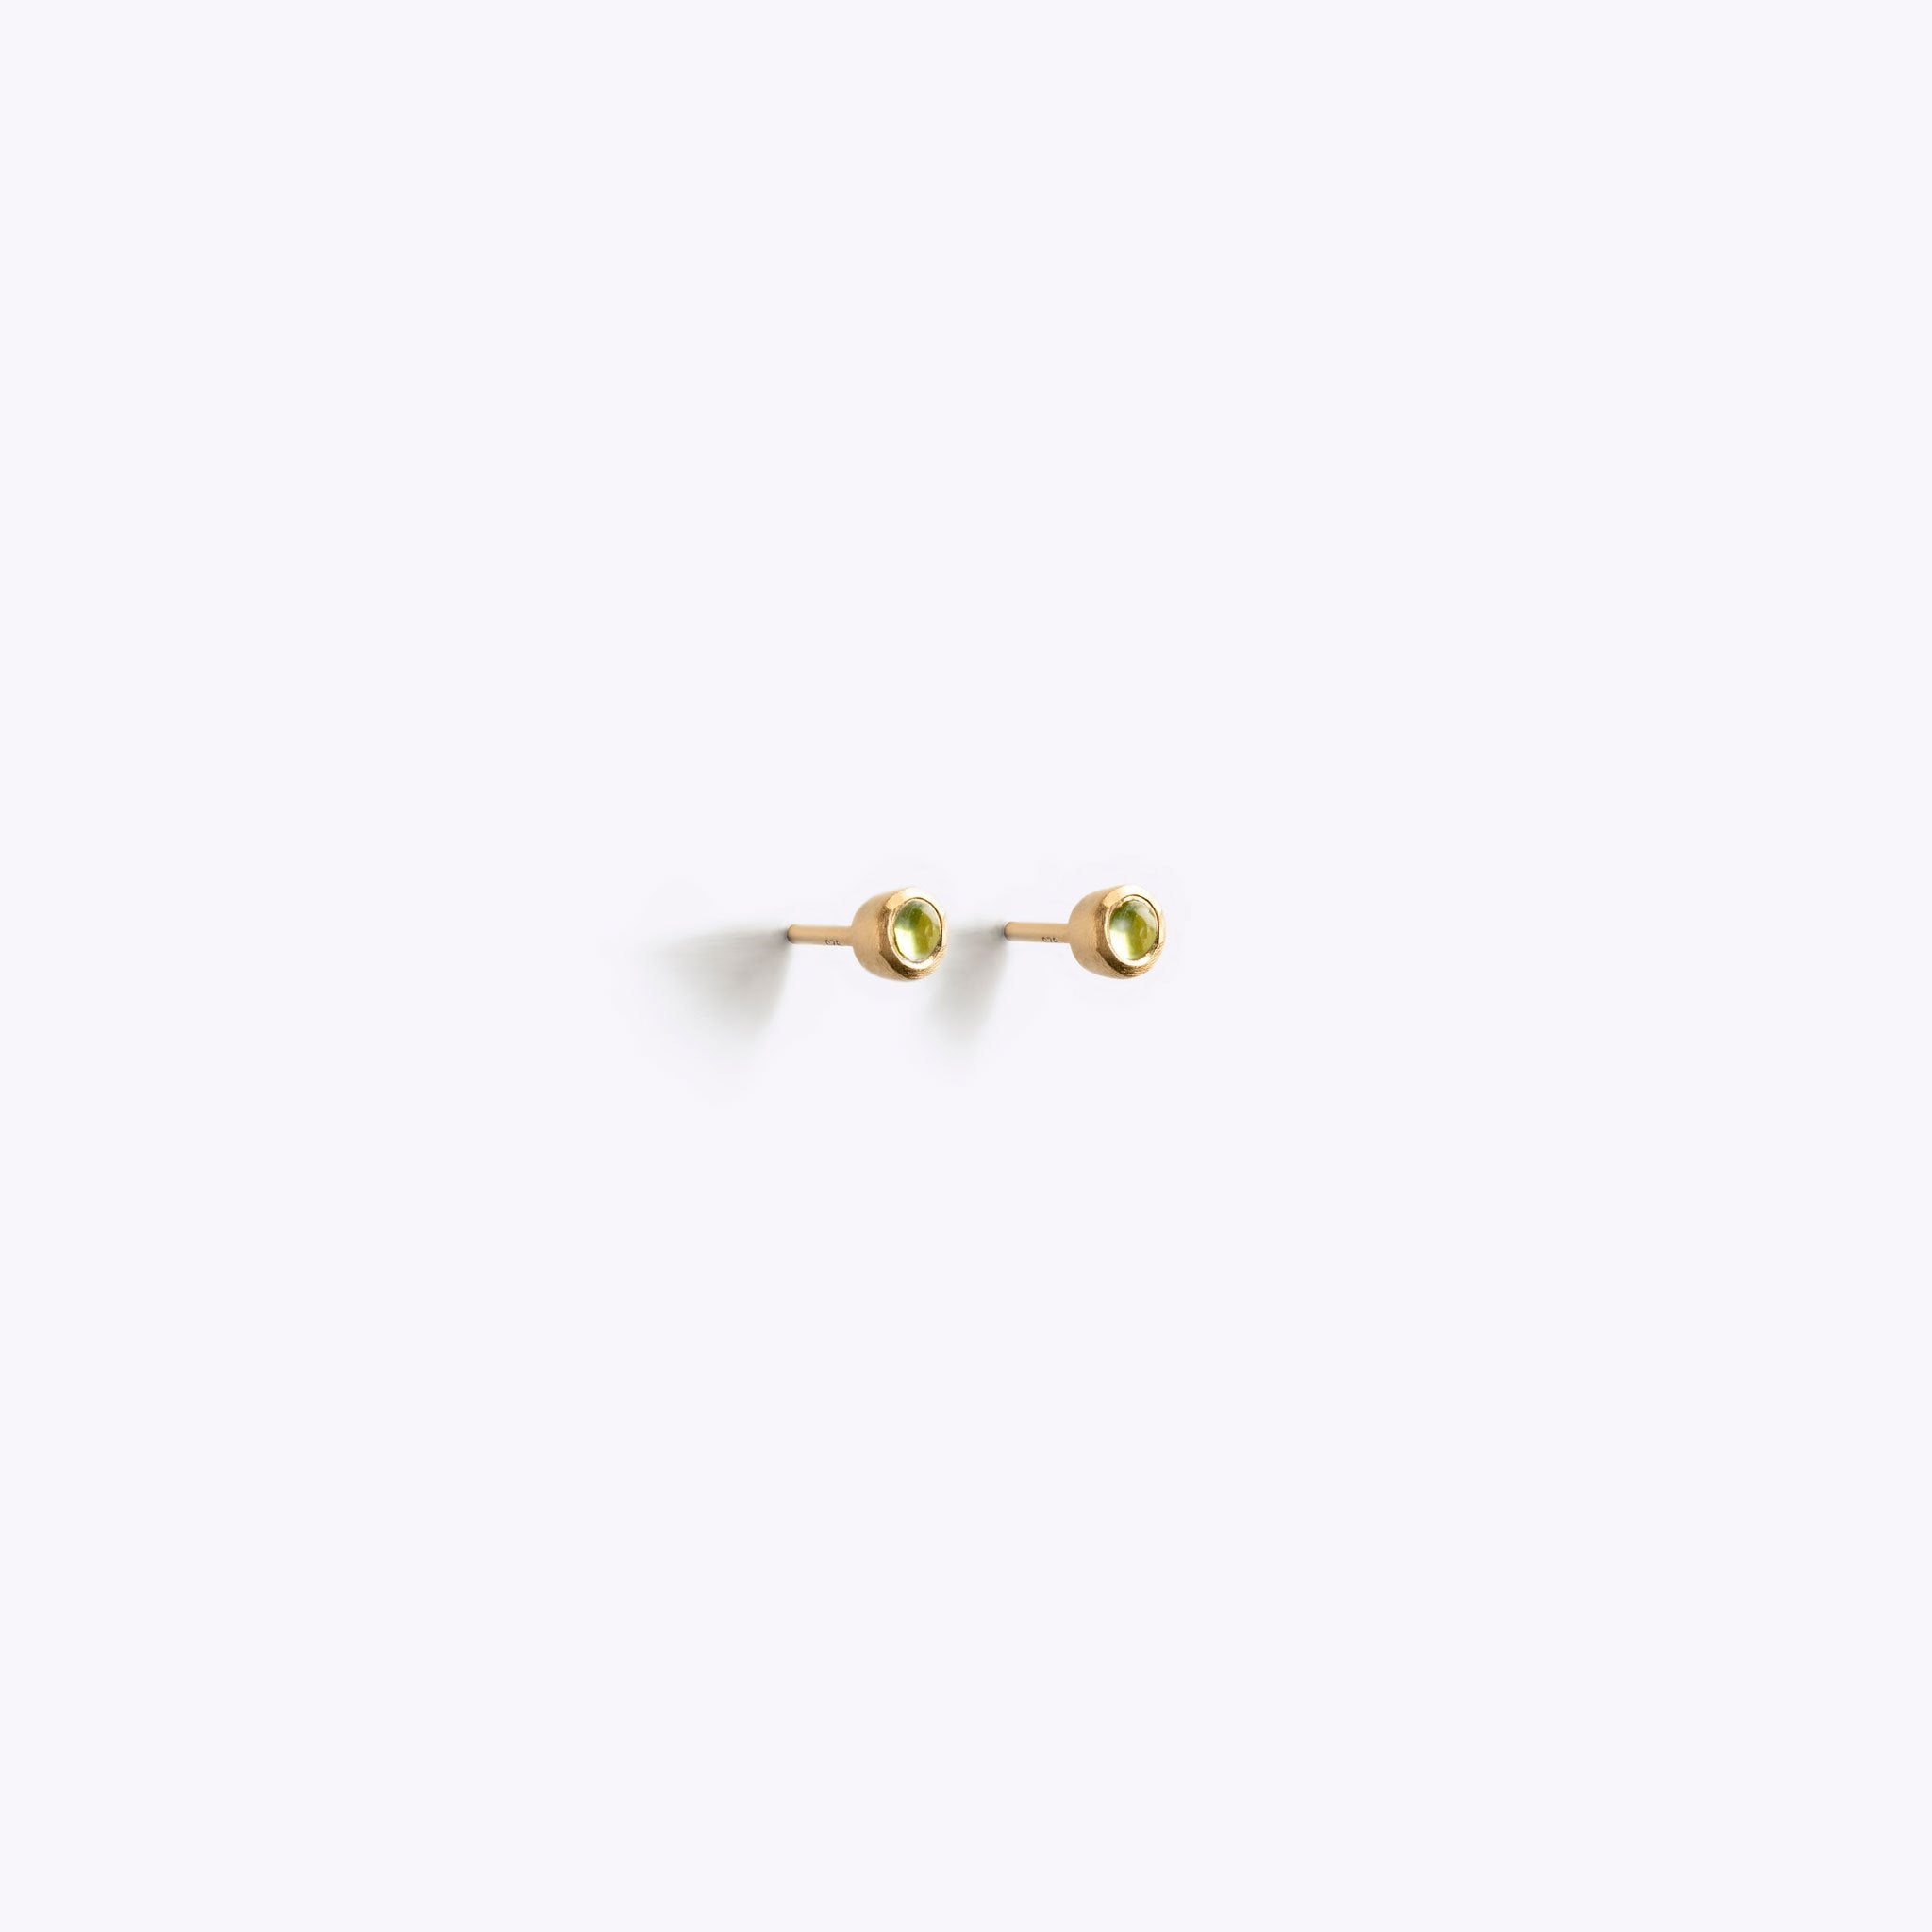 Wanderlust Life Ethically Handmade jewellery made in the UK. Minimalist gold and fine cord jewellery. August birthstone gold stud earrings. Peridot gemstone earrings.